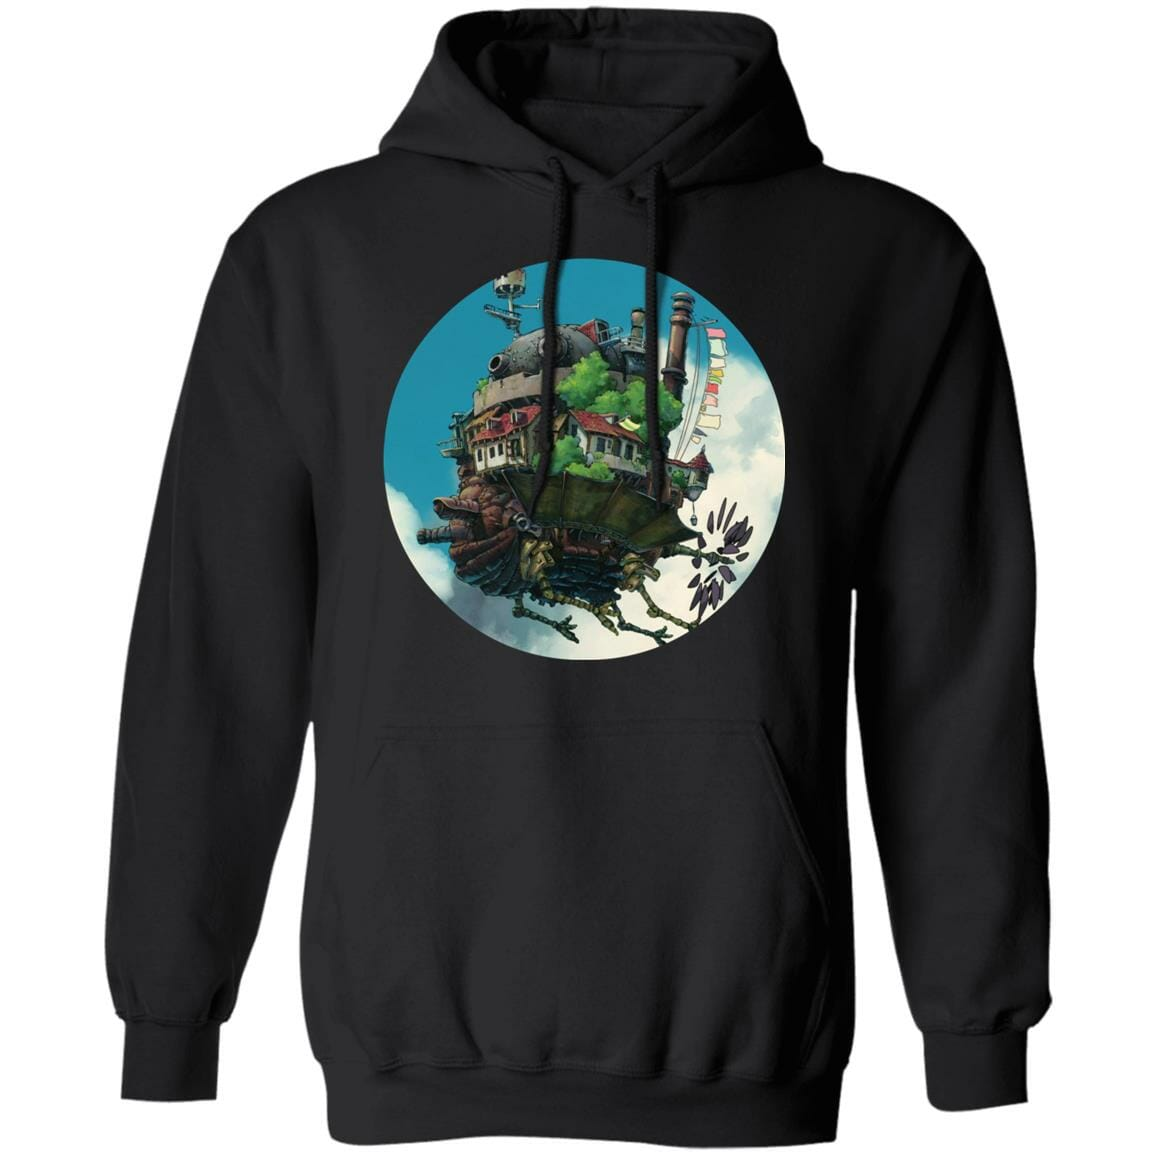 Howl's Moving Castle – Flying on the Sky Hoodie